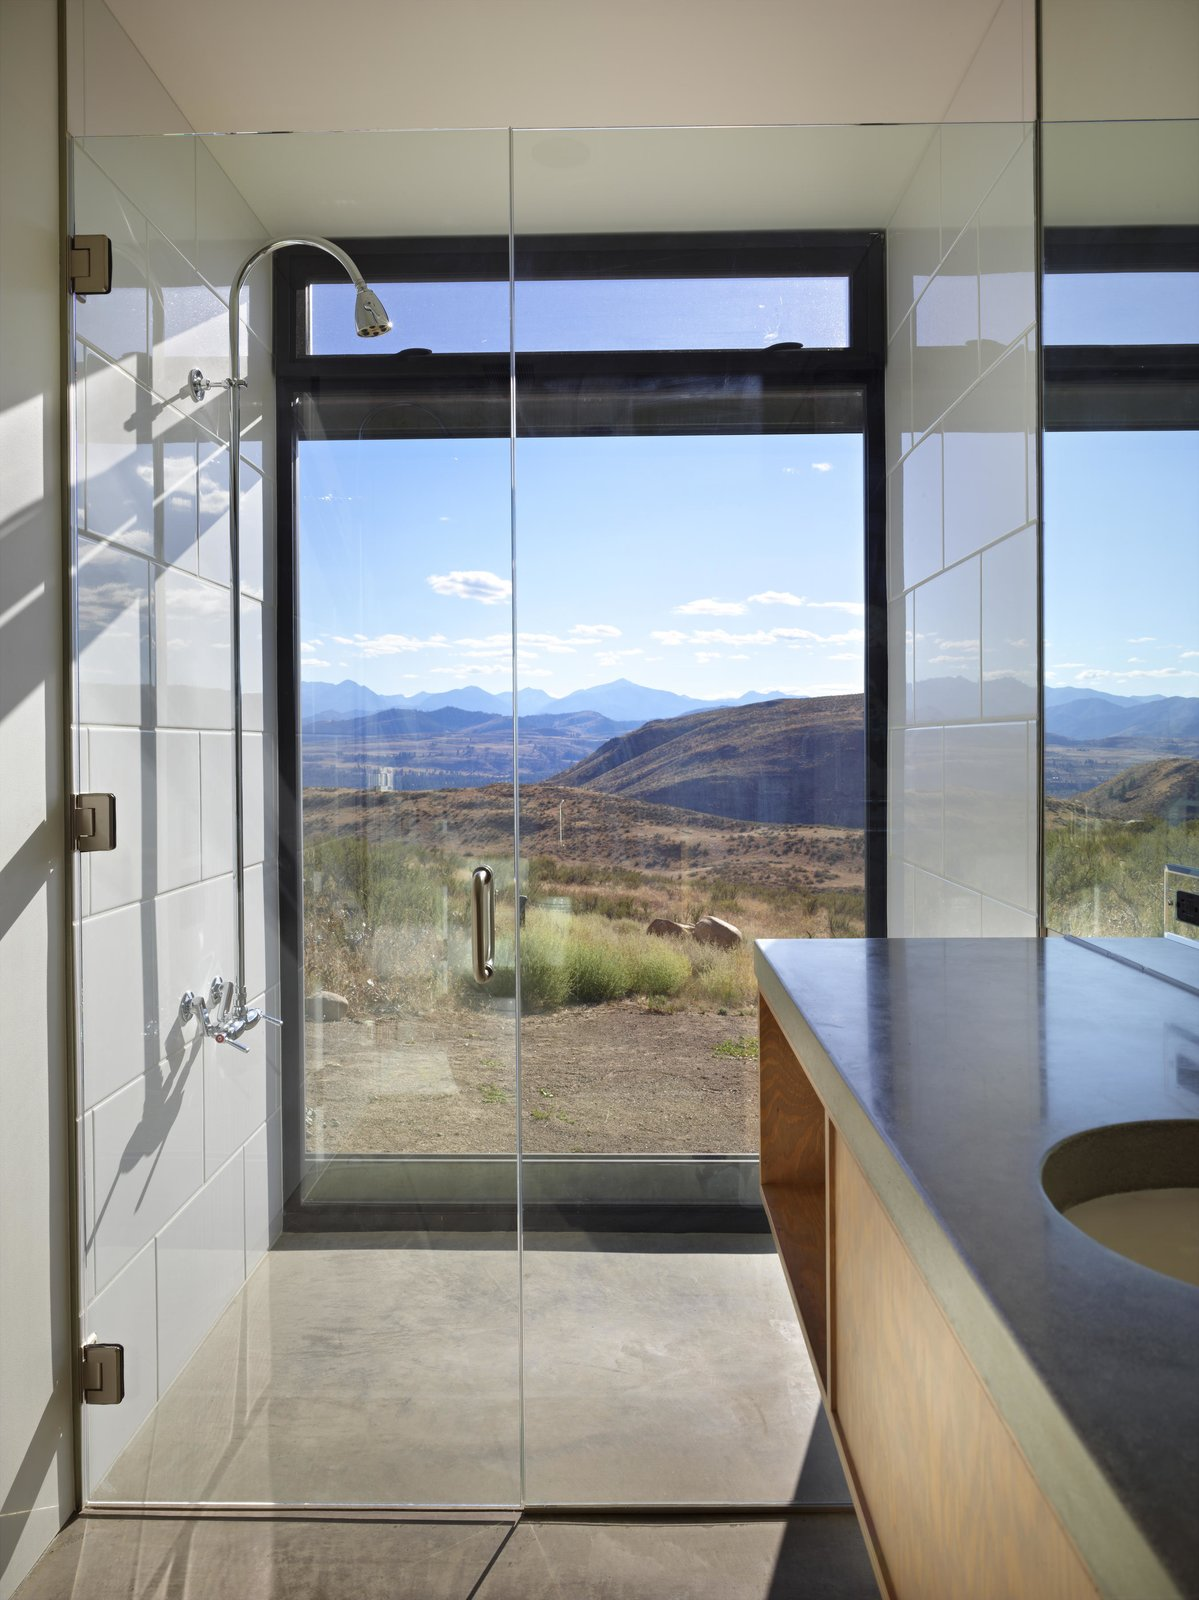 Bath Room, Undermount Sink, Concrete Counter, Ceramic Tile Wall, and Full Shower Studhorse   Olson Kundig  Studhorse by Olson Kundig